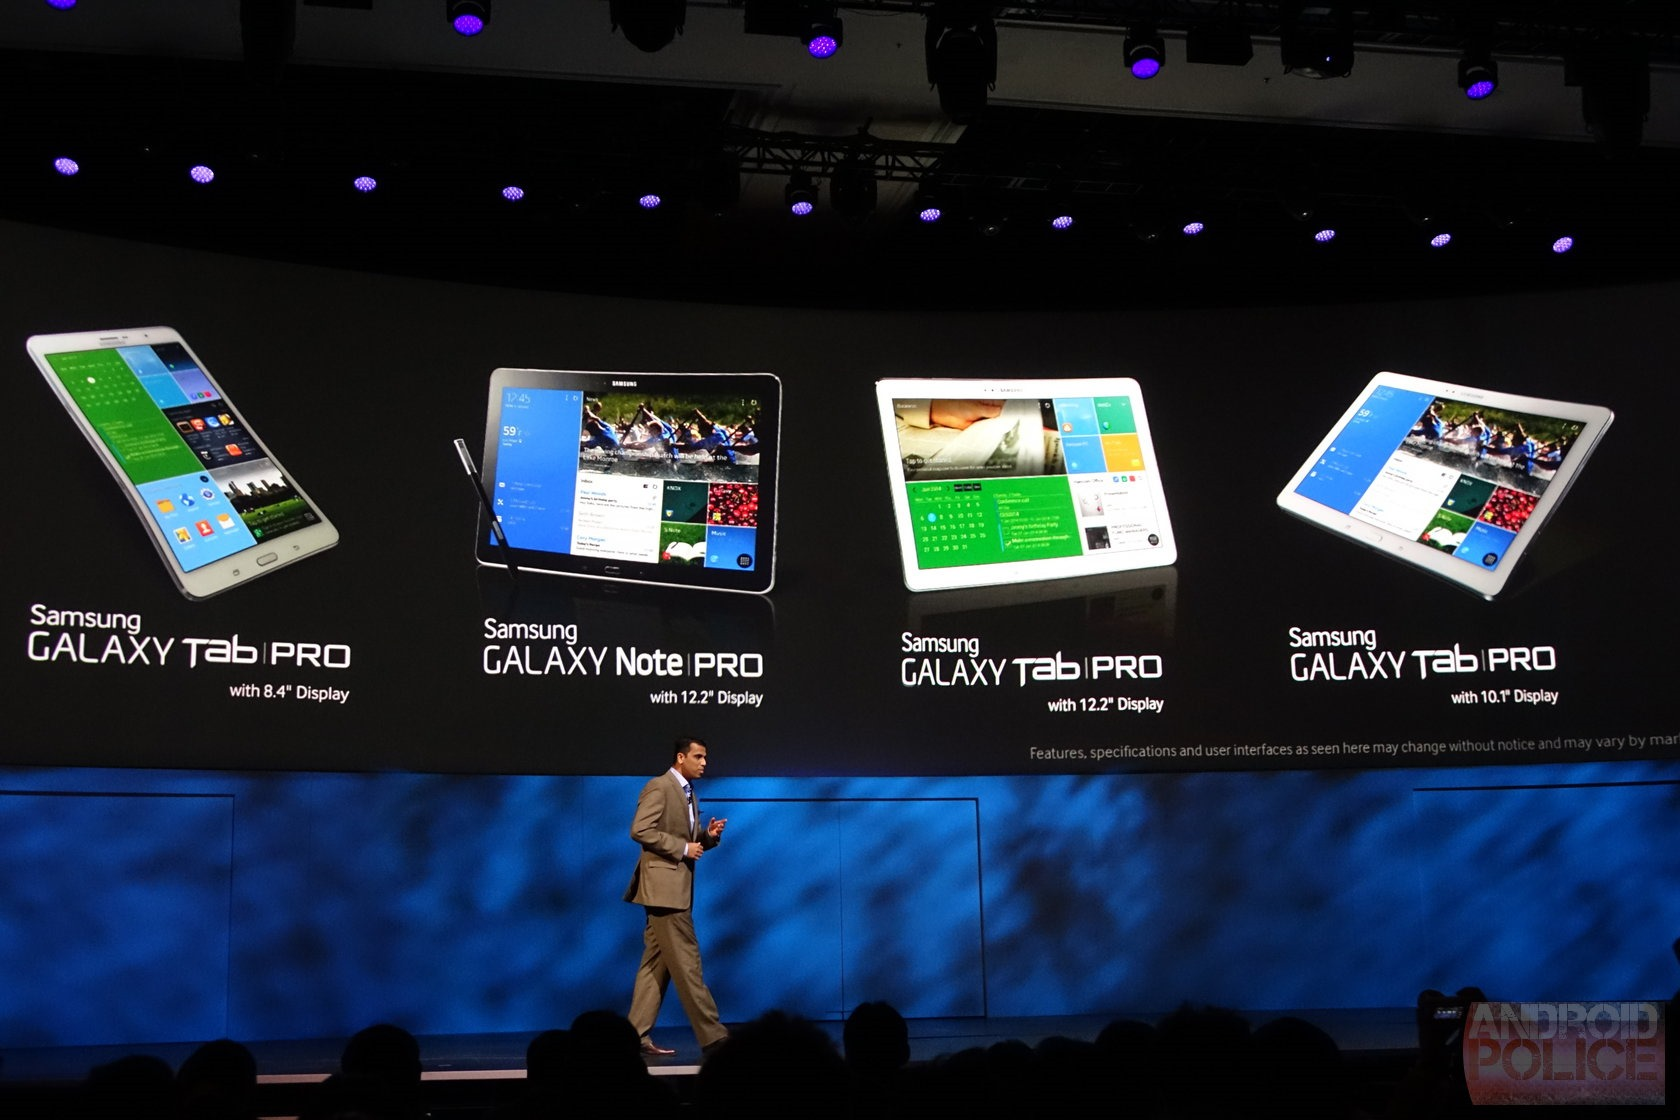 Ces 2014 Samsung Announces The 122 Inch Galaxy Notepro And Tabpro Note Pro P901 Is Essentially A Larger Version Of 101 It Has S Pen Stylus Samsungs Raft Ux Features Based Around That